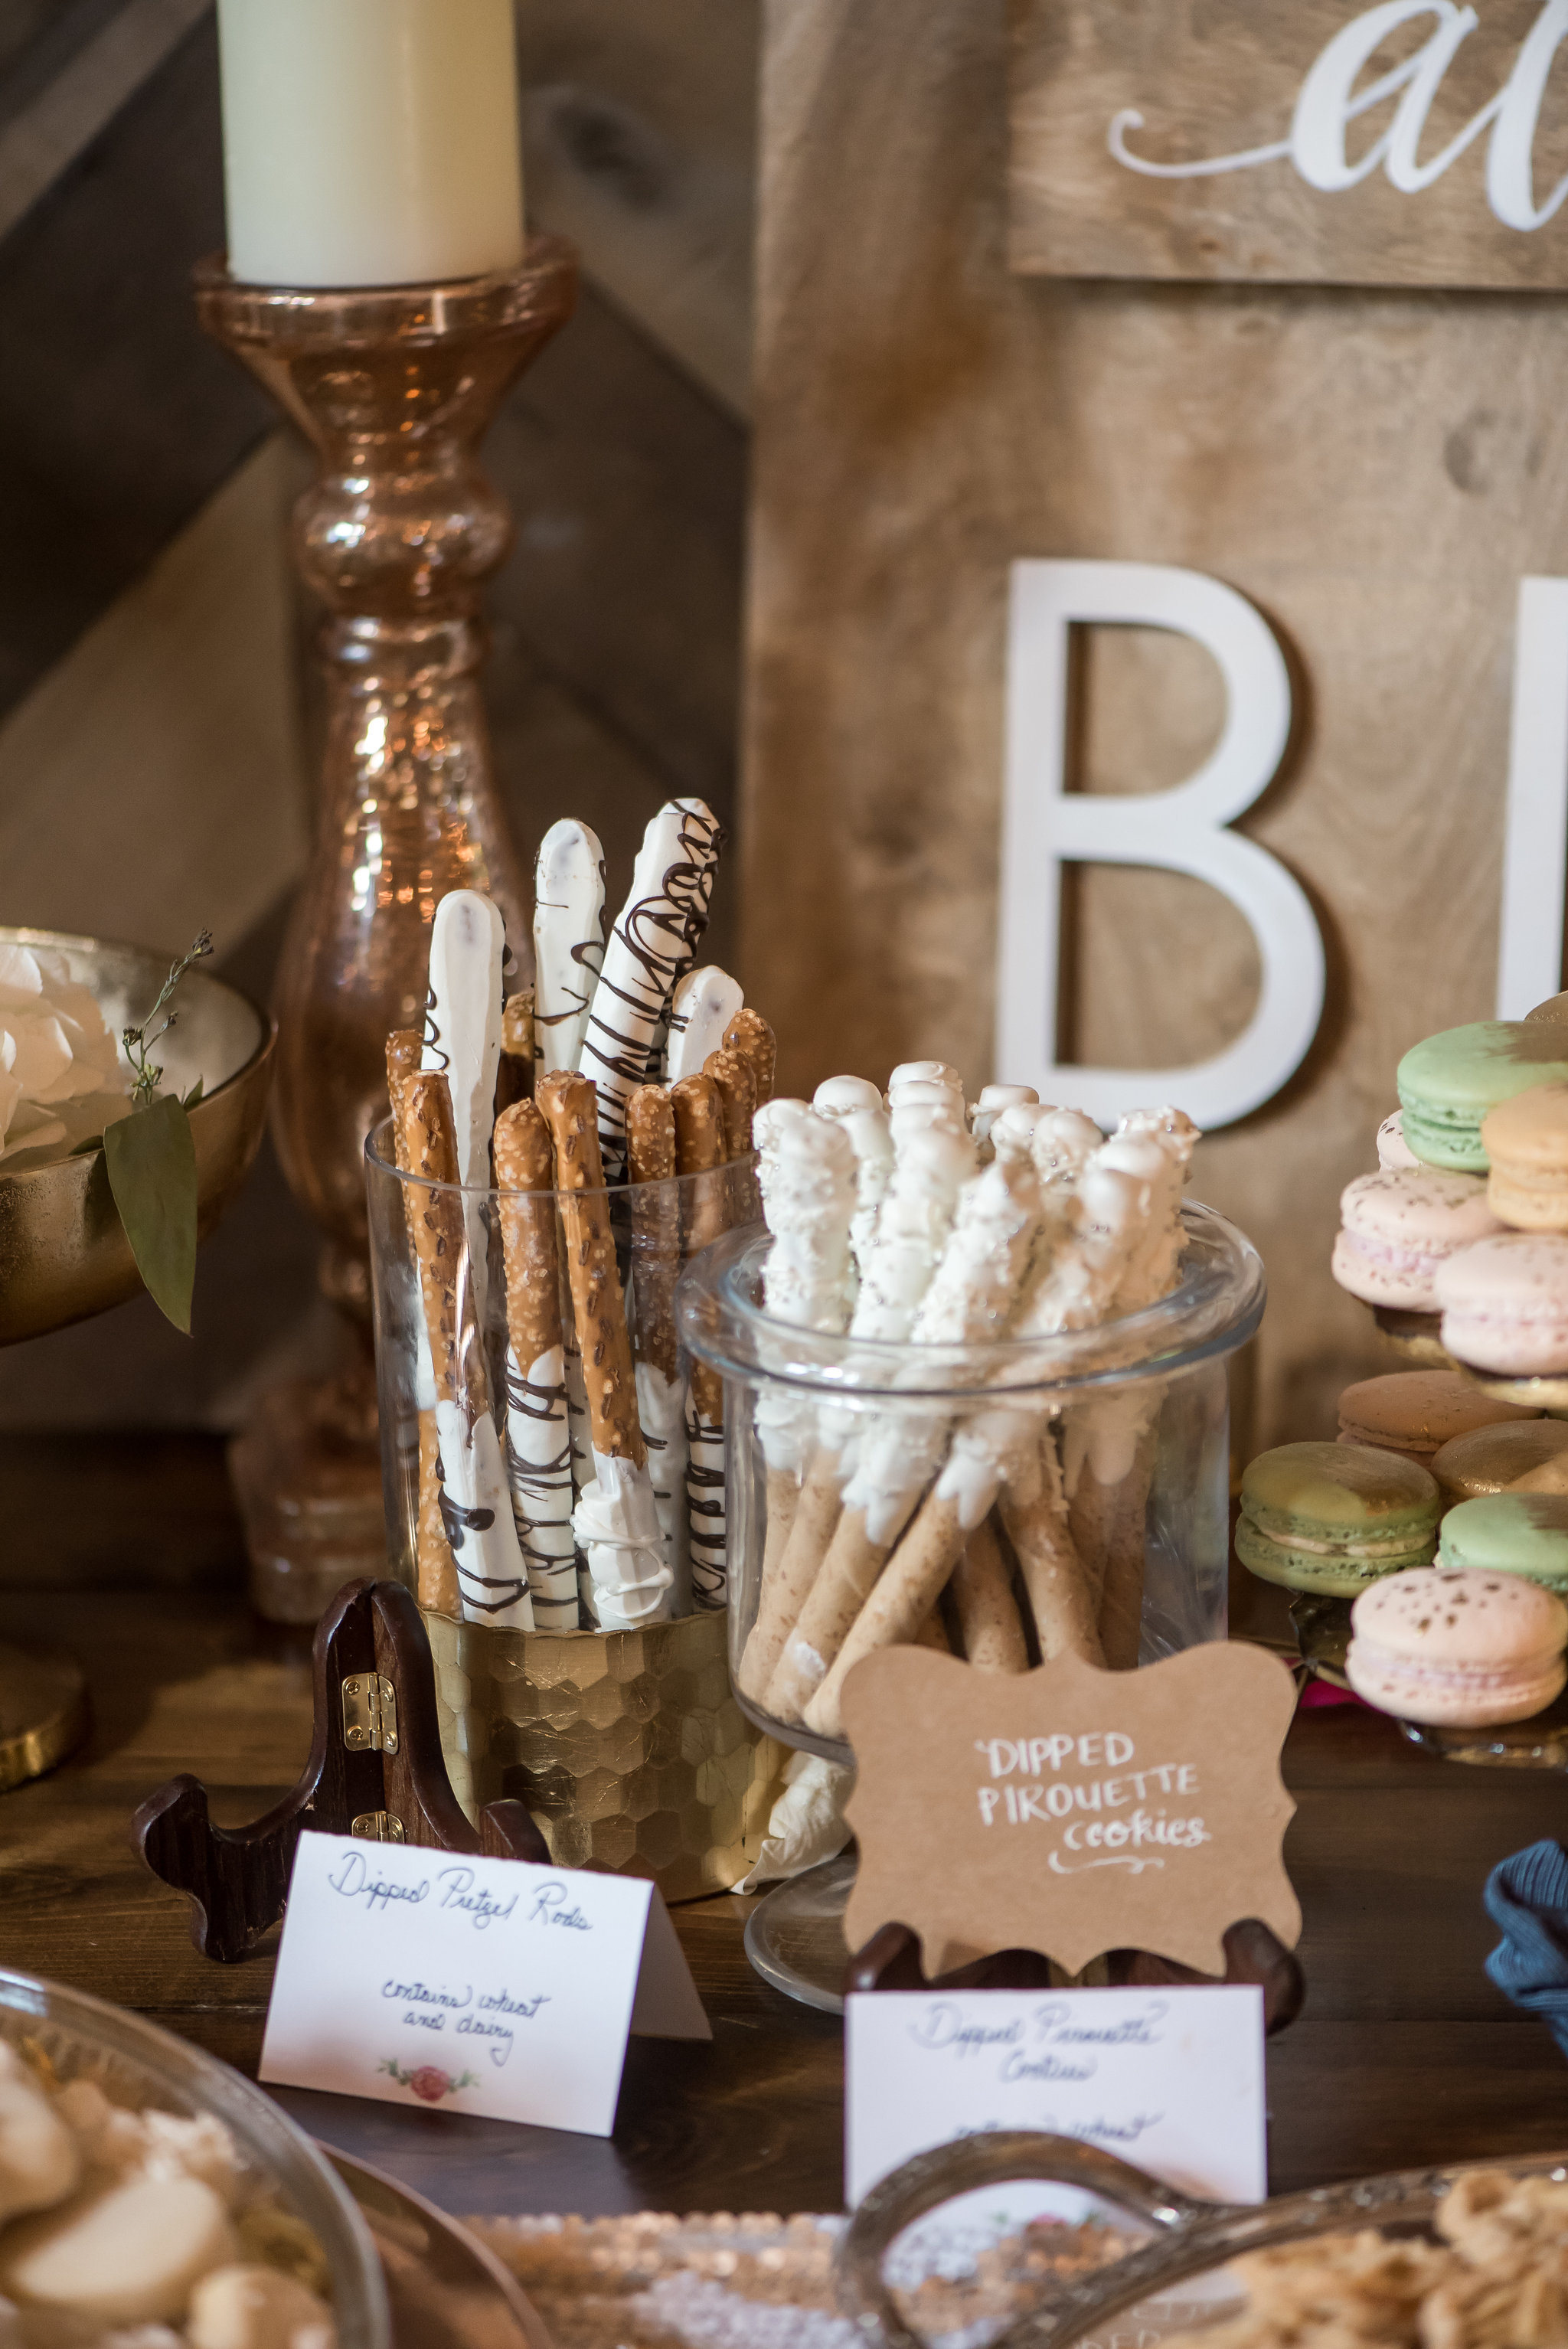 dipped pretzels dessert bar | Kelly Birch Photography :: Bloom Lake Barn :: Sixpence Events Minnesota wedding planner :: A Vintage Touch Weddings :: Brett Dorian.jpg